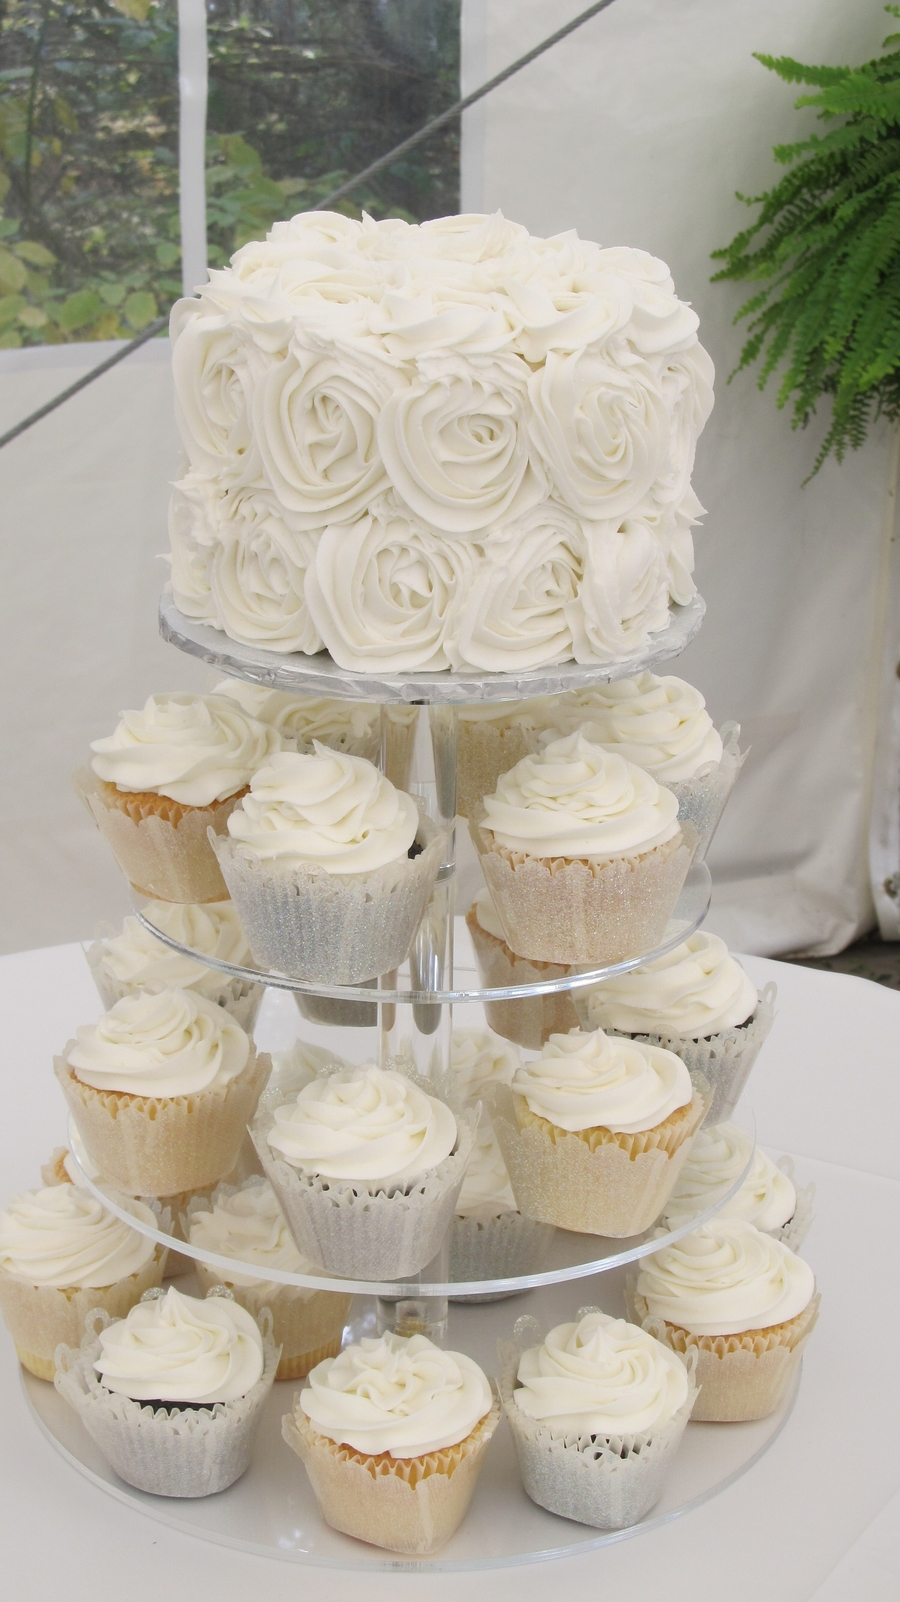 Rosette Wedding Cake with Cupcakes